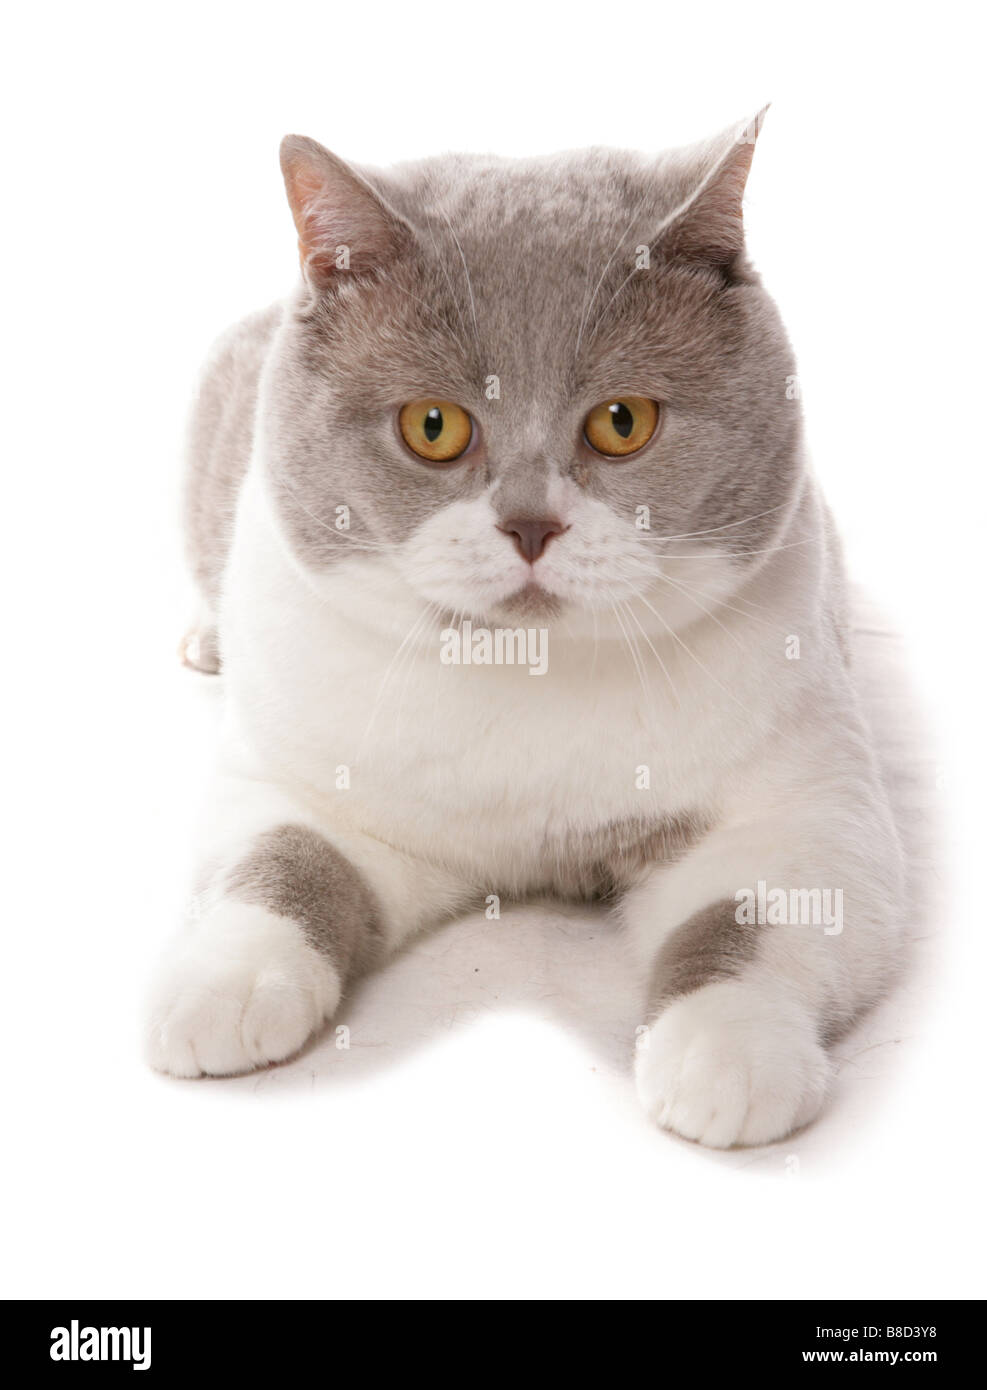 British Shorthair lilac and white cat Laying Portrait Studio Stock